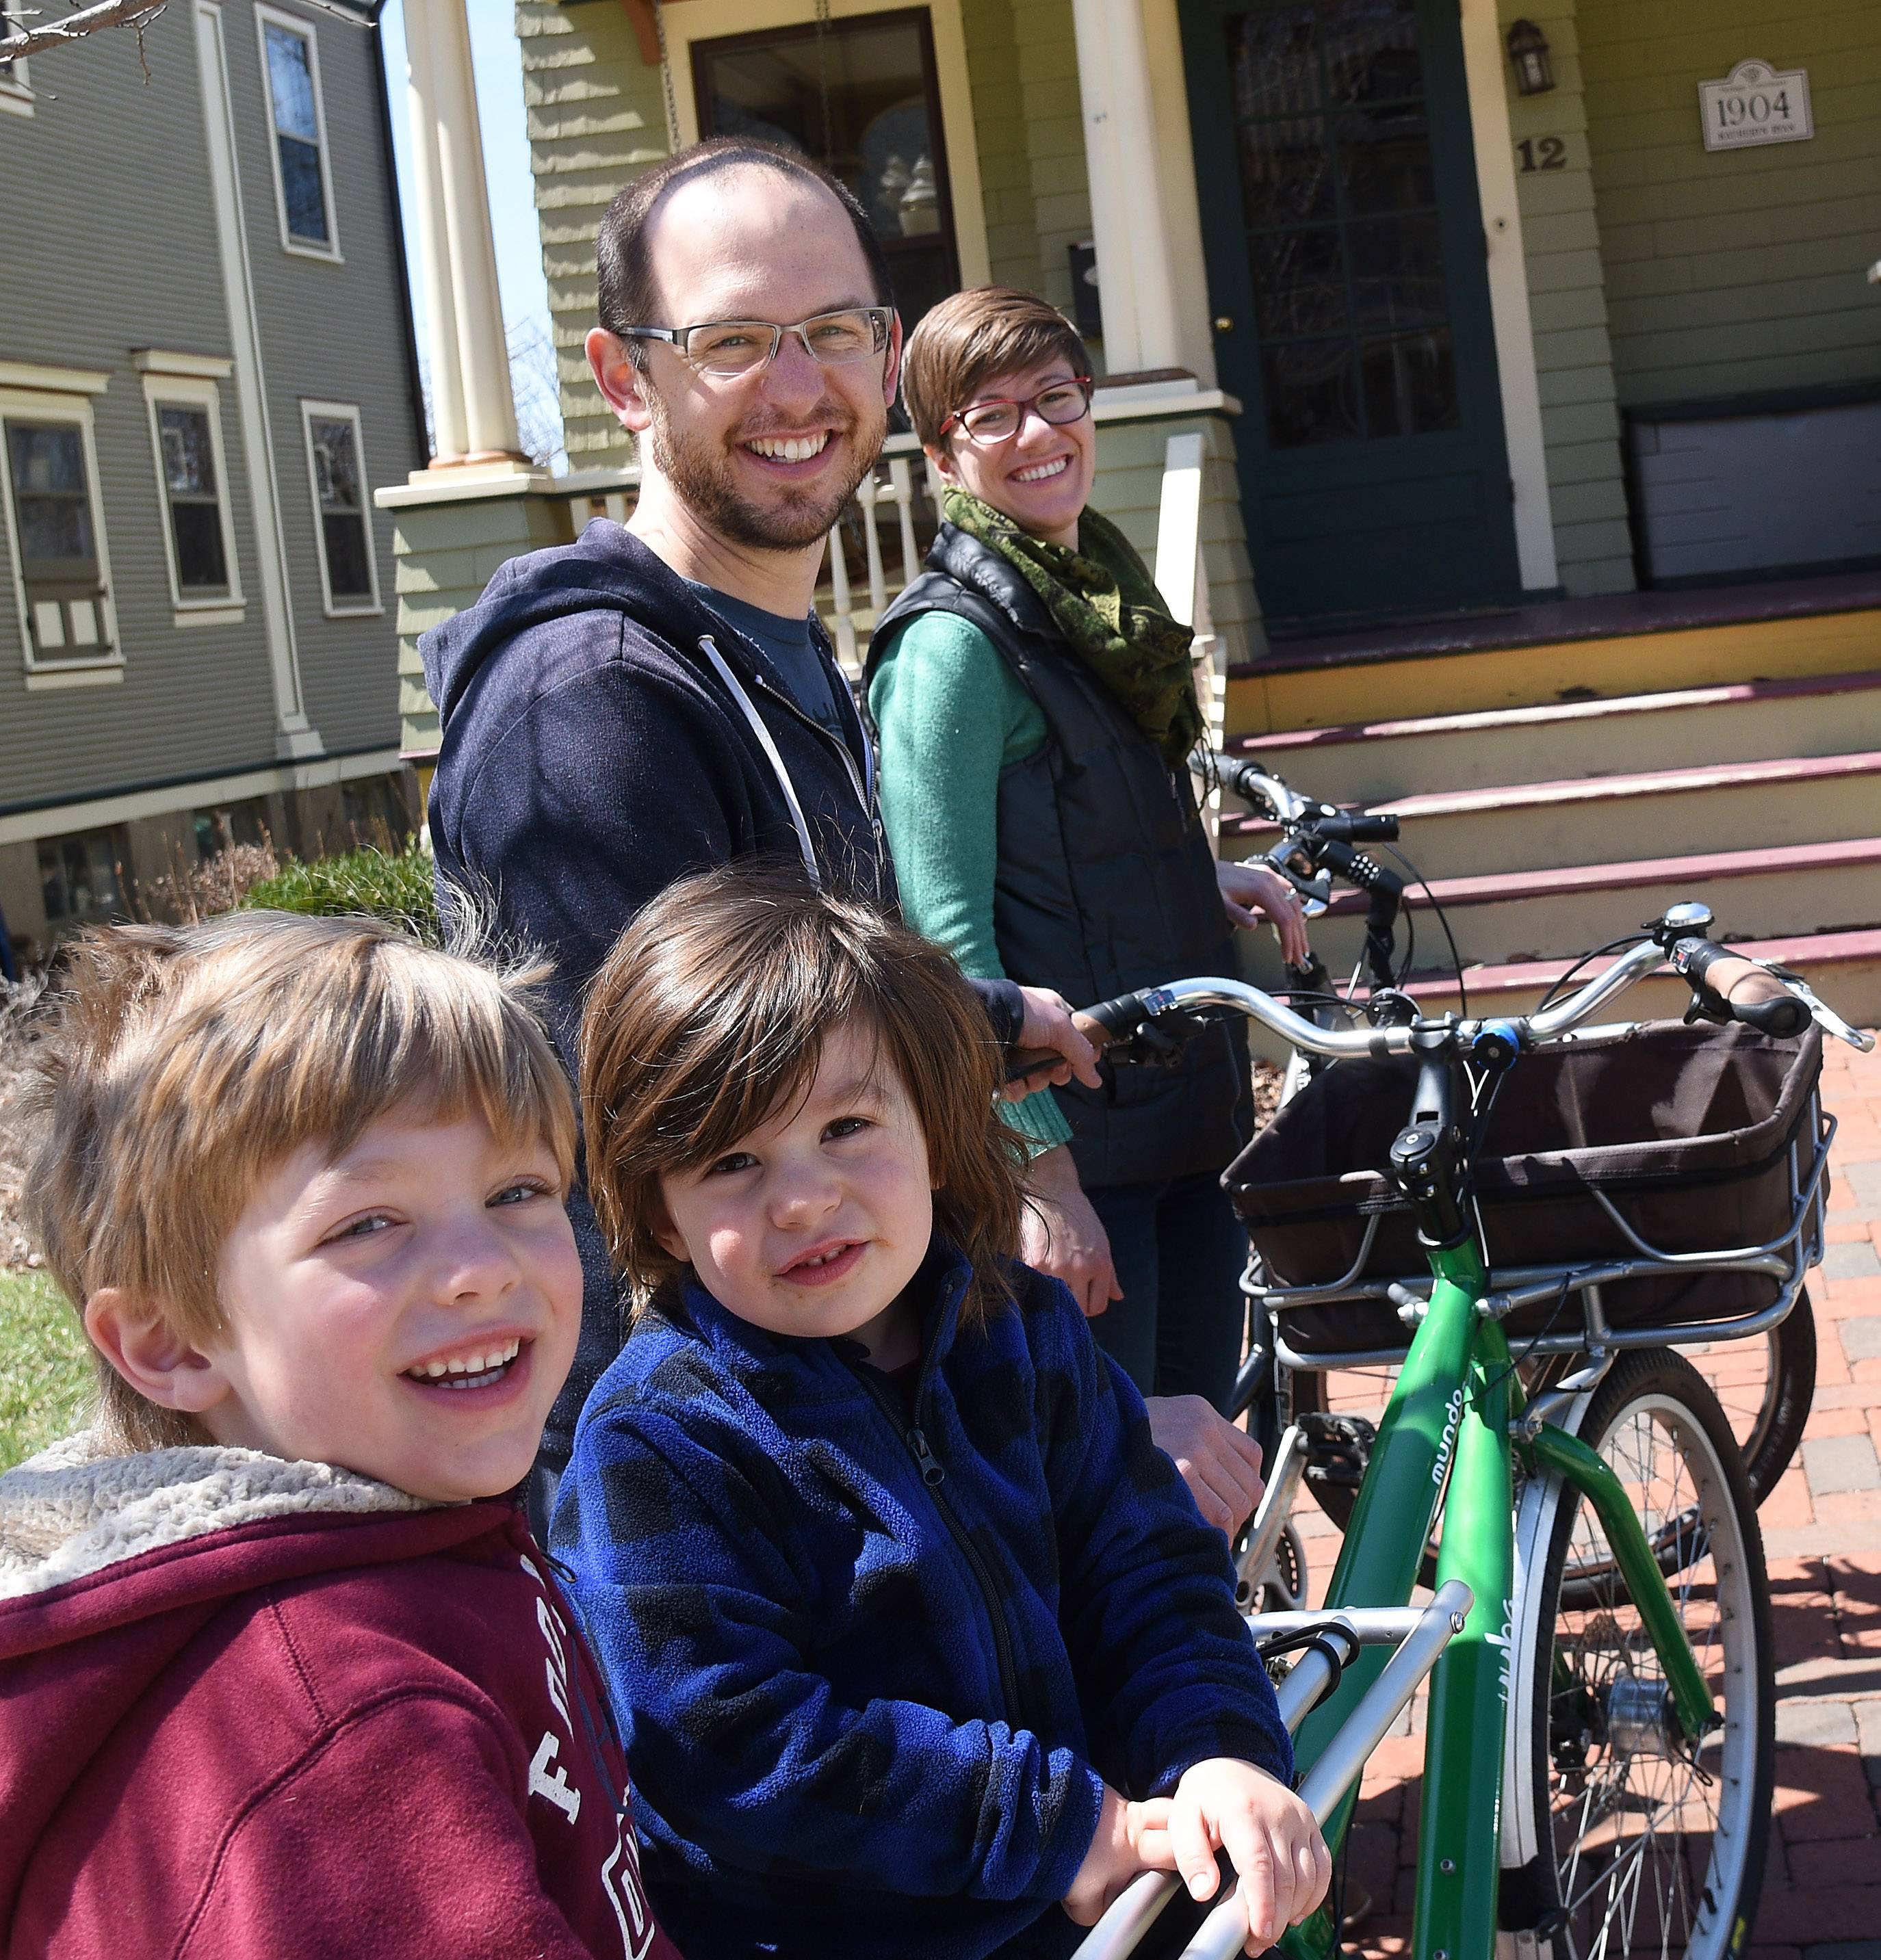 "Elgin Bike Hub is a community project by the Thompson family that encourages people to bike around Elgin with ""fun, social rides to explore our neighborhoods."" Parker and Katie are pictured with sons Noam, 5, left, and Gabriel, 3."